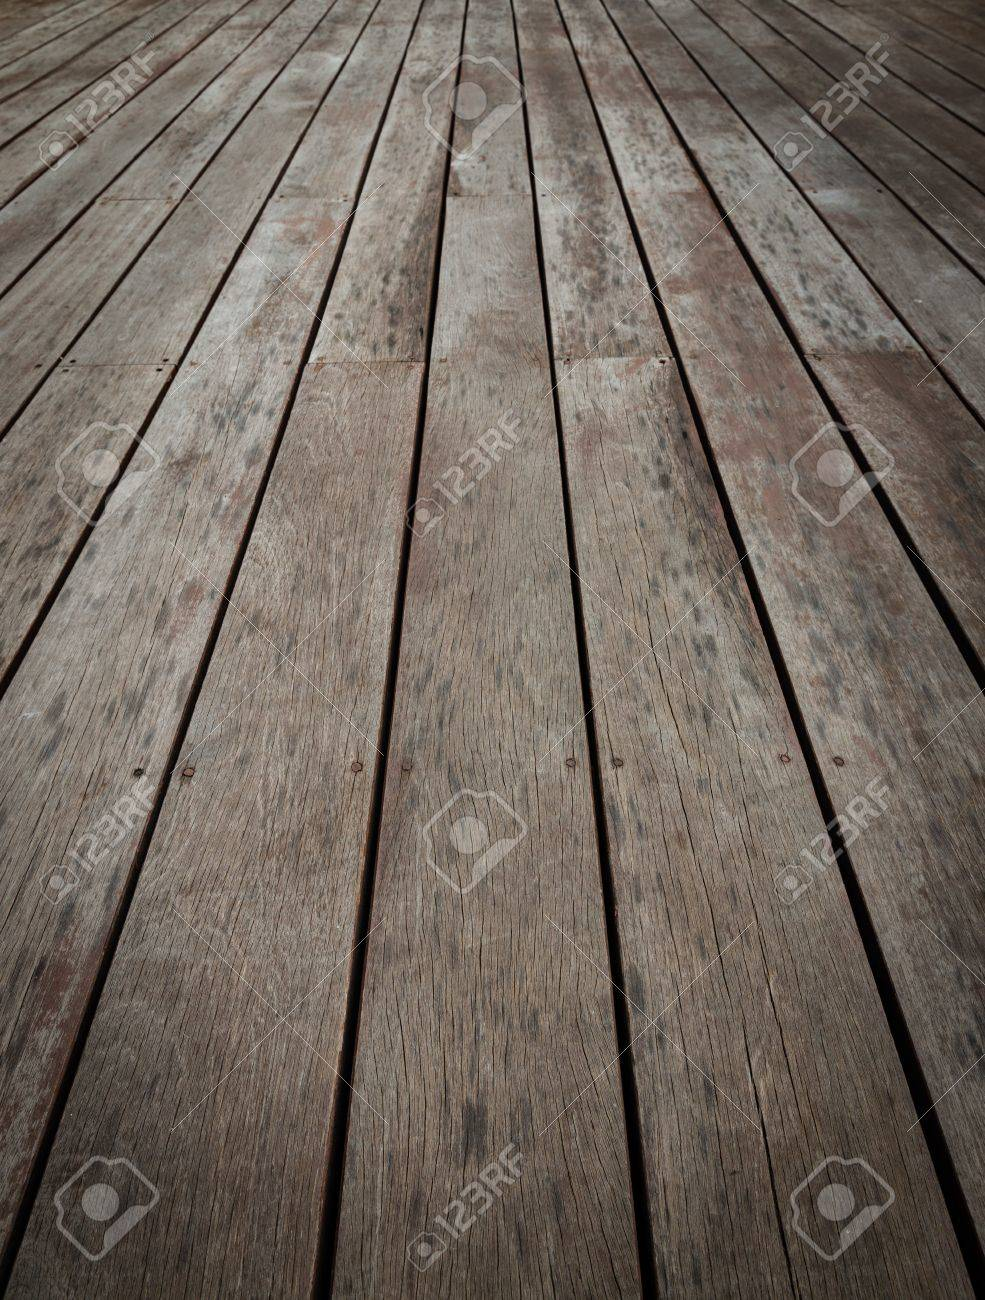 Abstract Background Wooden Floor Stock Photo - 17947244